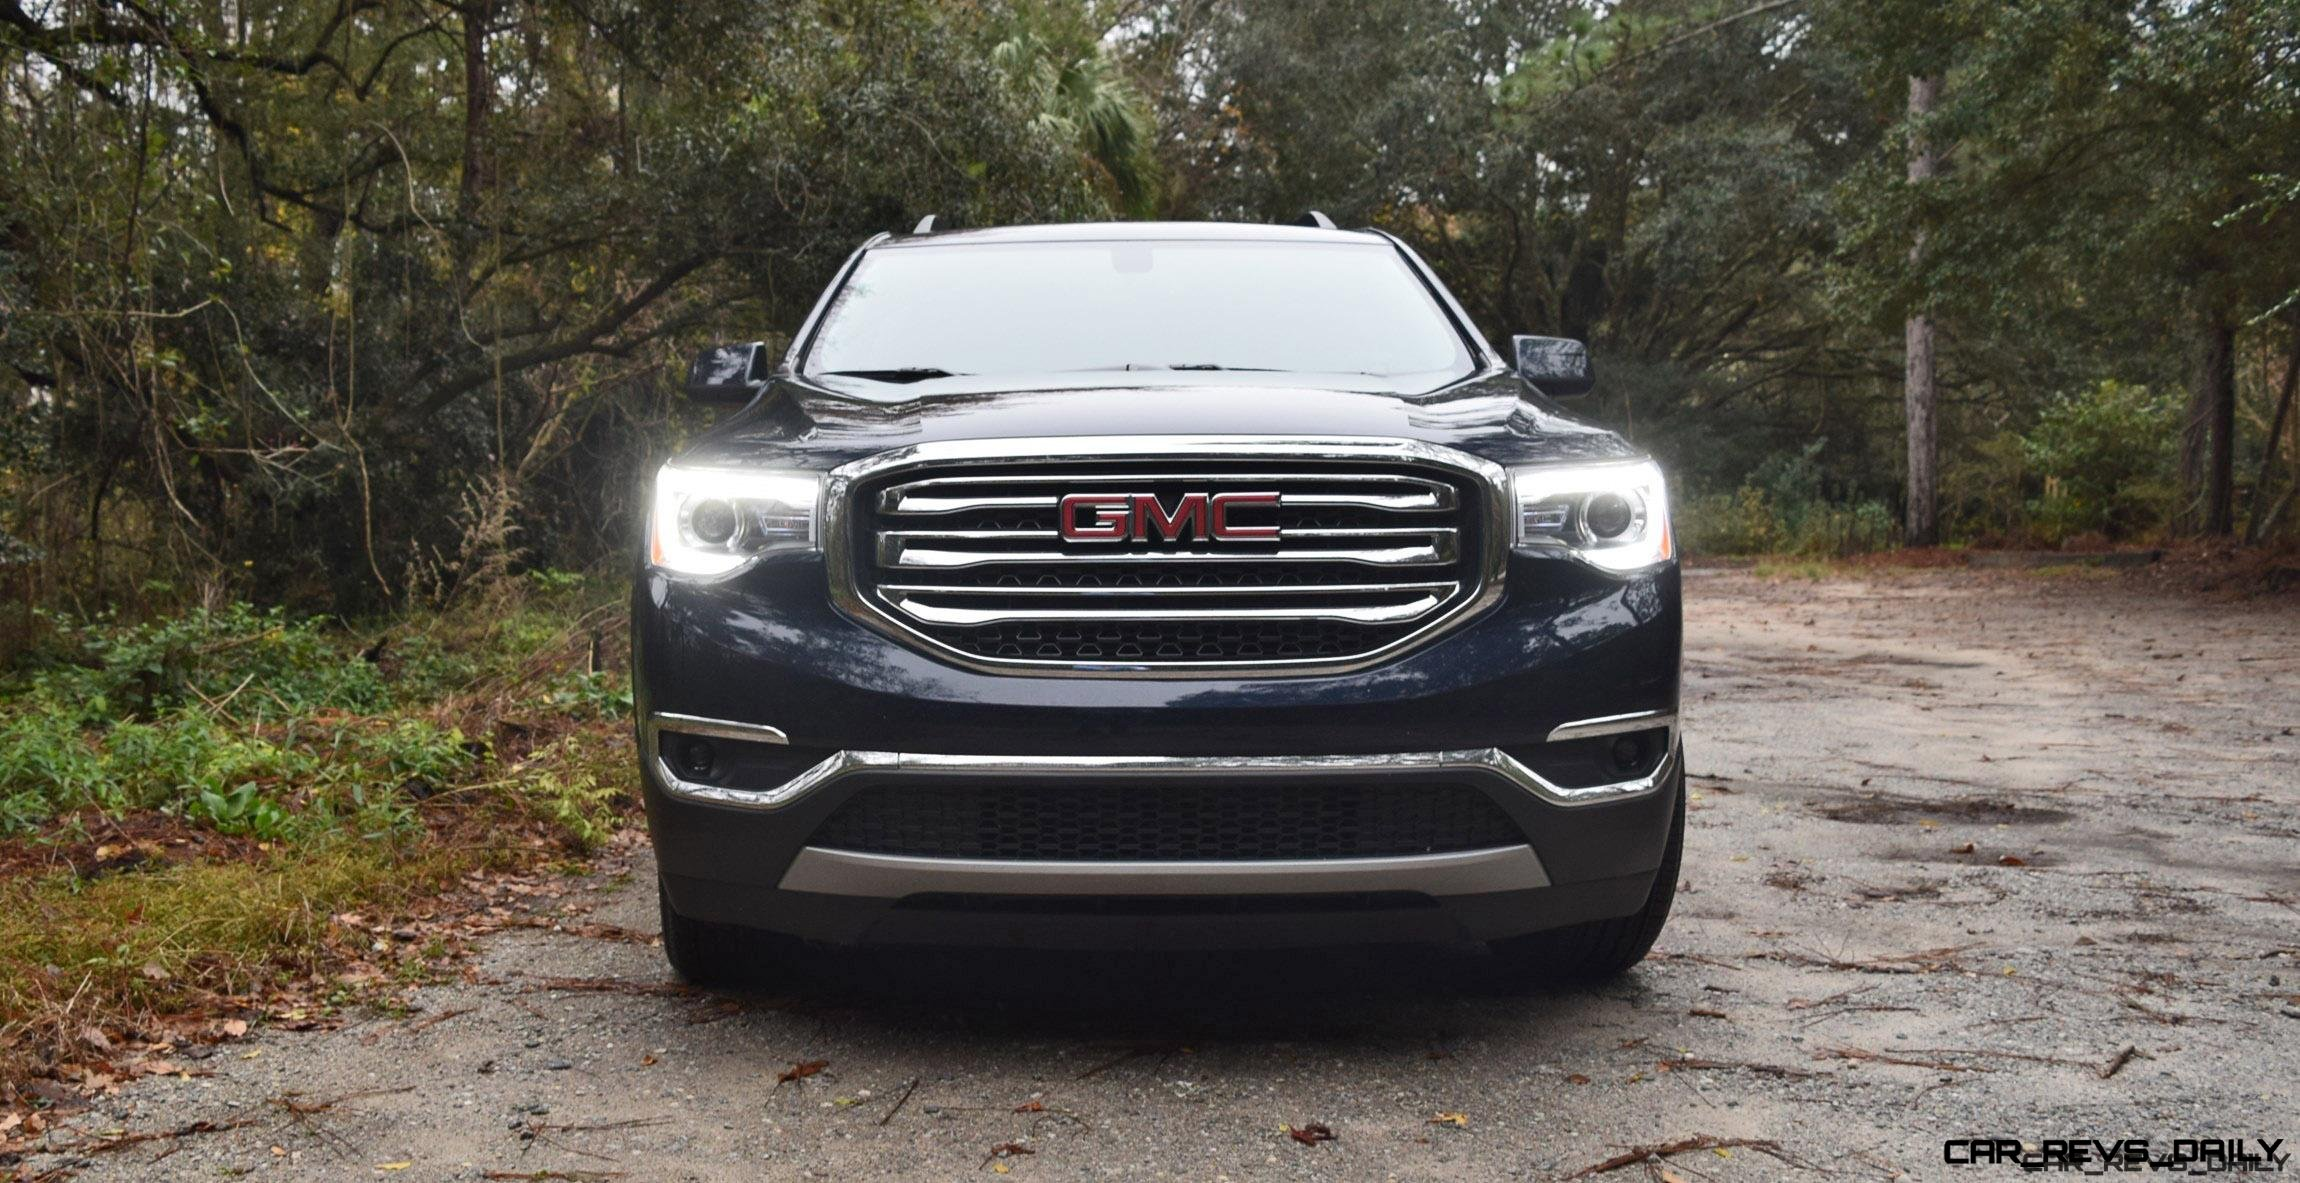 2017 GMC Acadia Exteior Photos 12